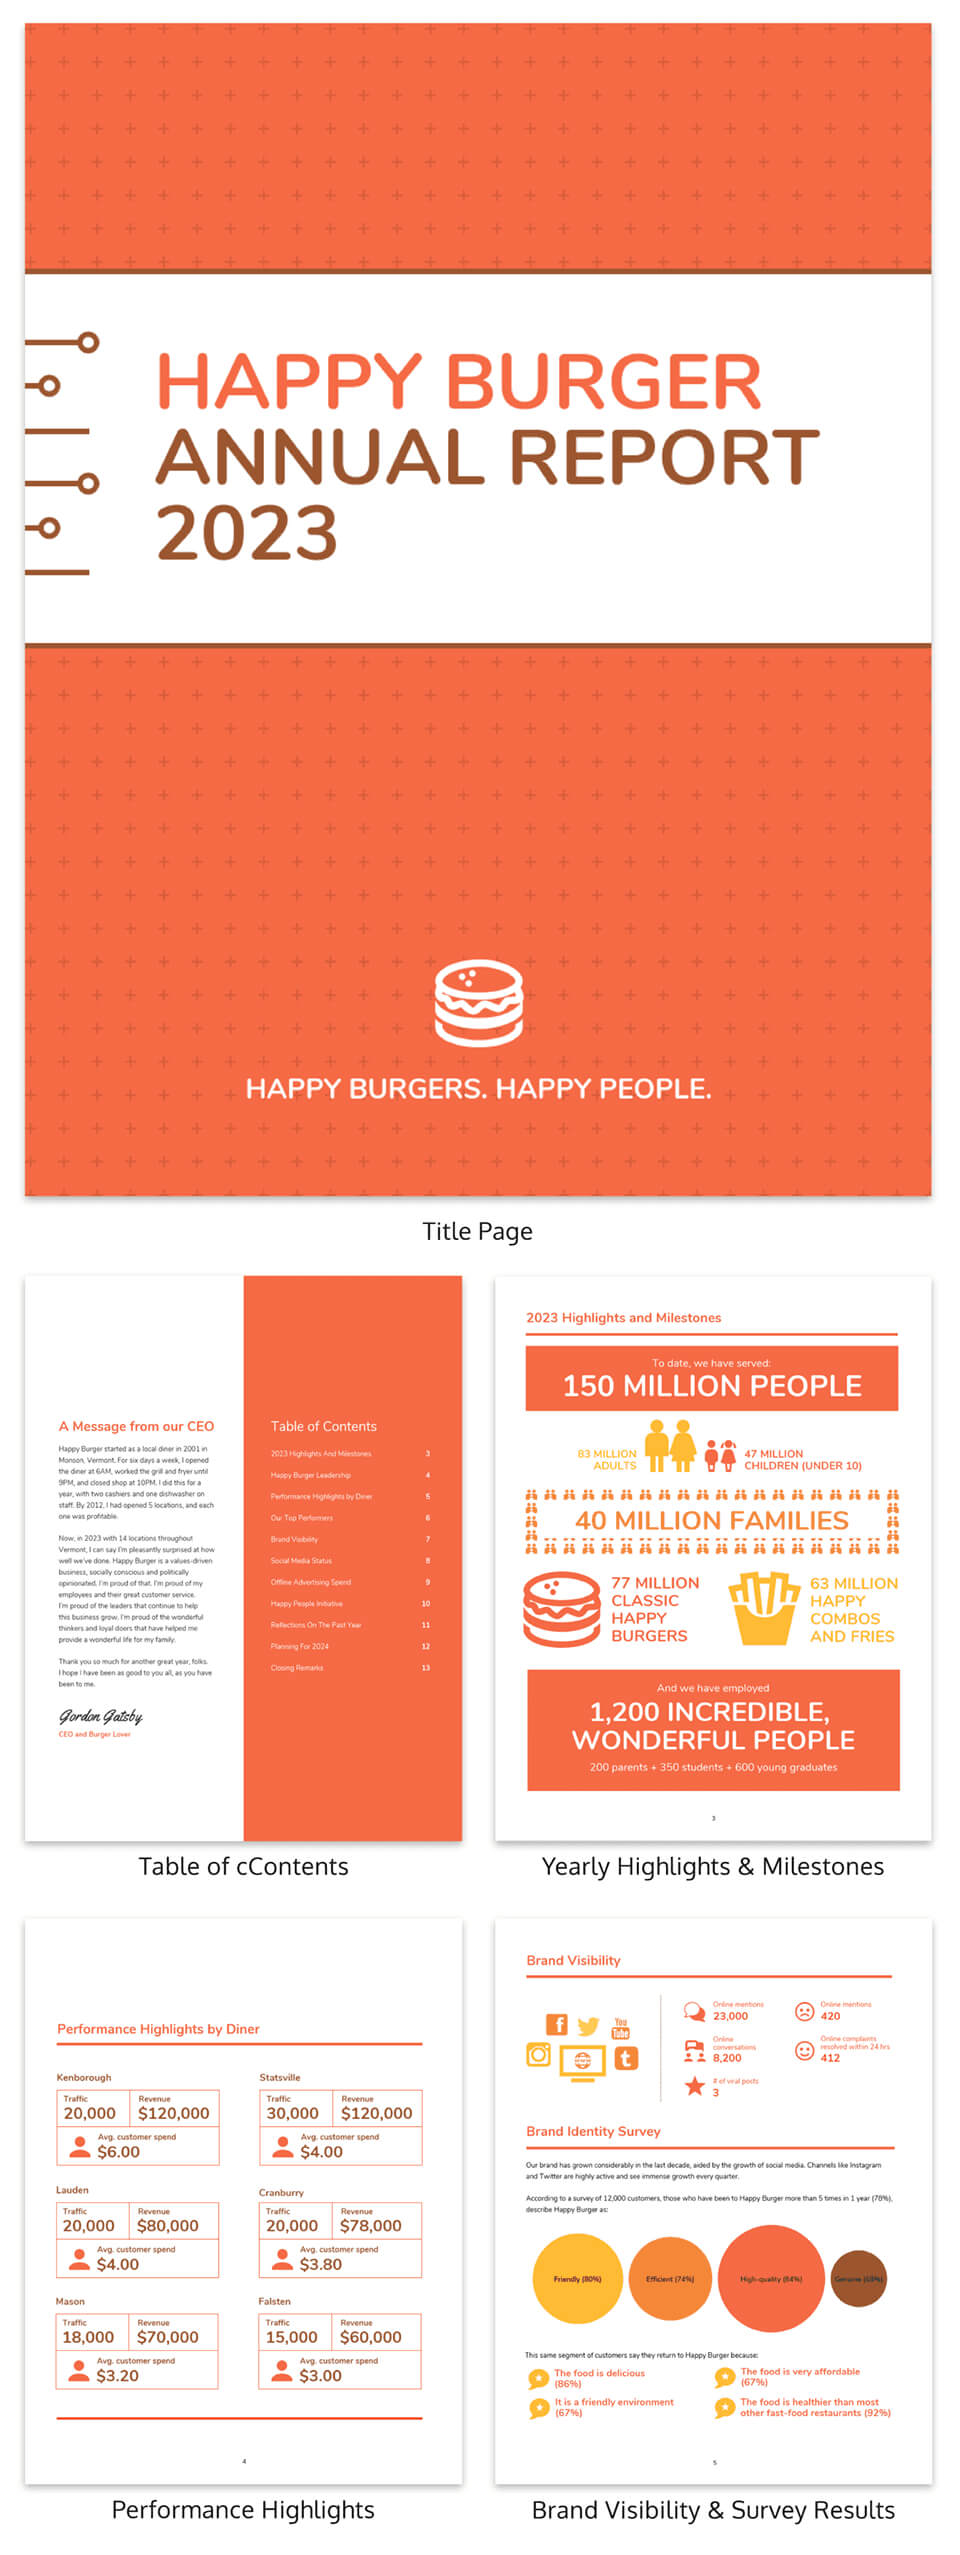 55+ Customizable Annual Report Design Templates, Examples & Tips with regard to Chairman's Annual Report Template